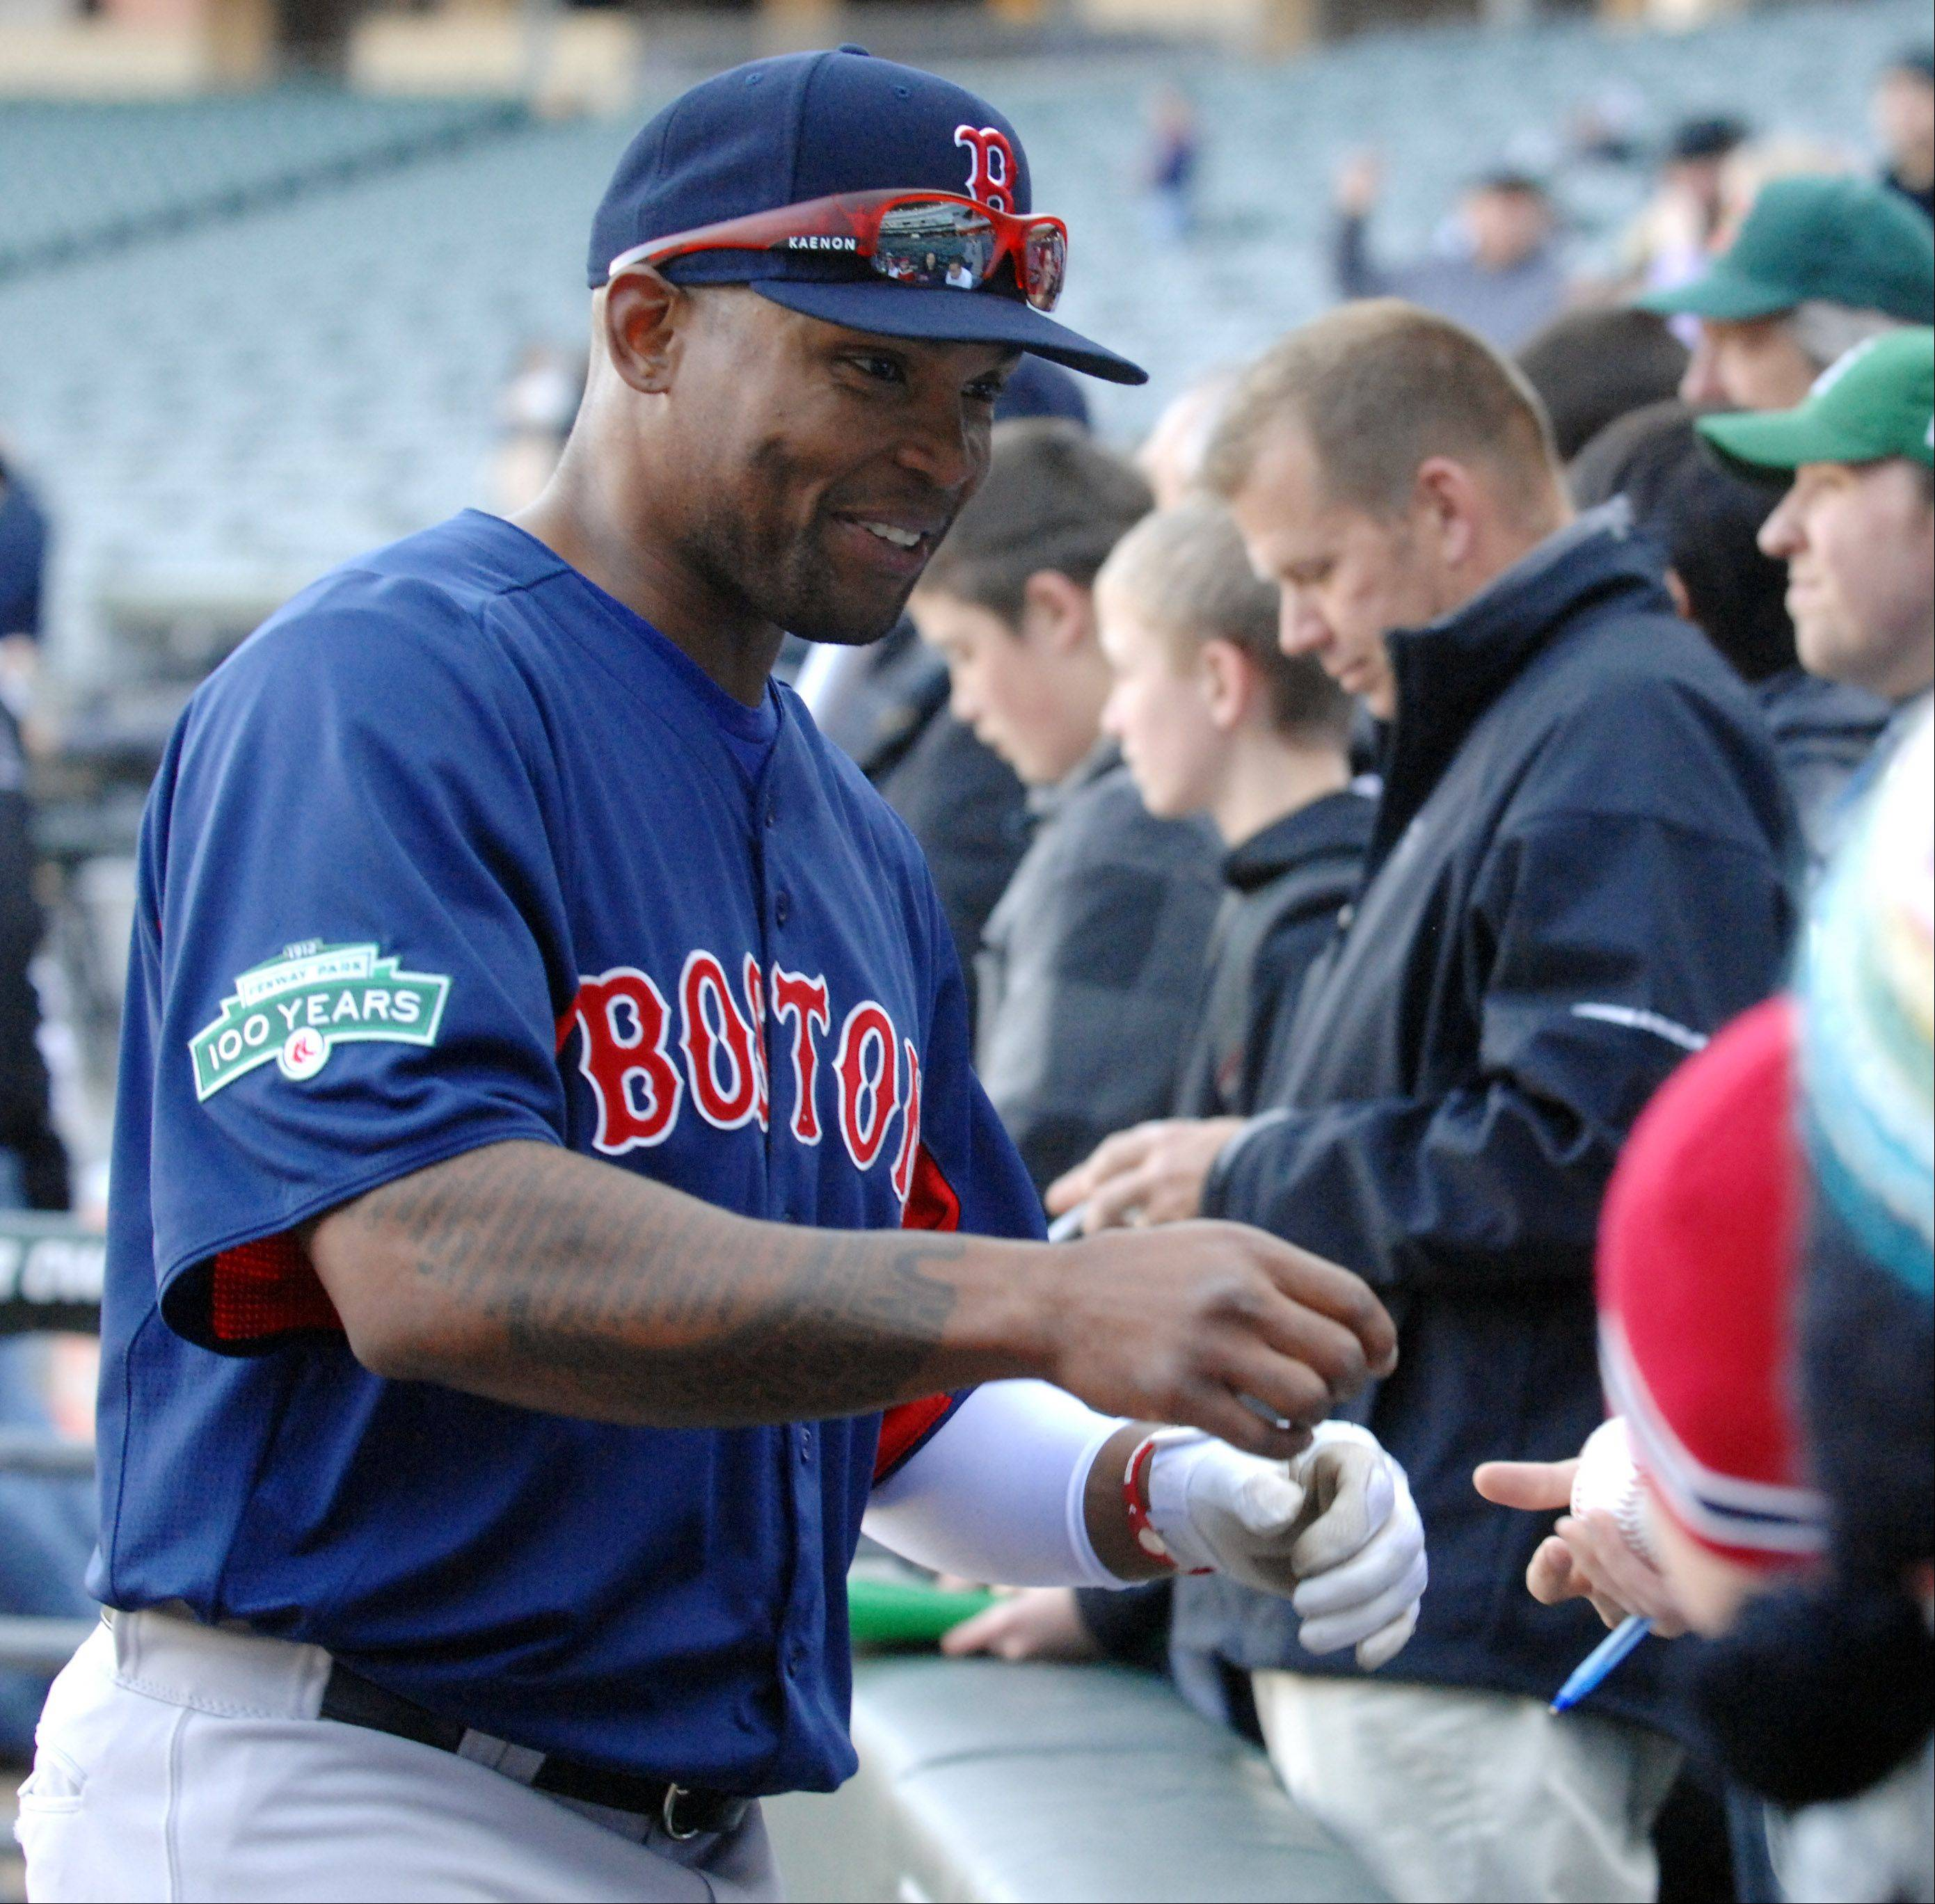 Former Cub and current Red Sox outfielder Marlon Byrd signs autographs before the game.